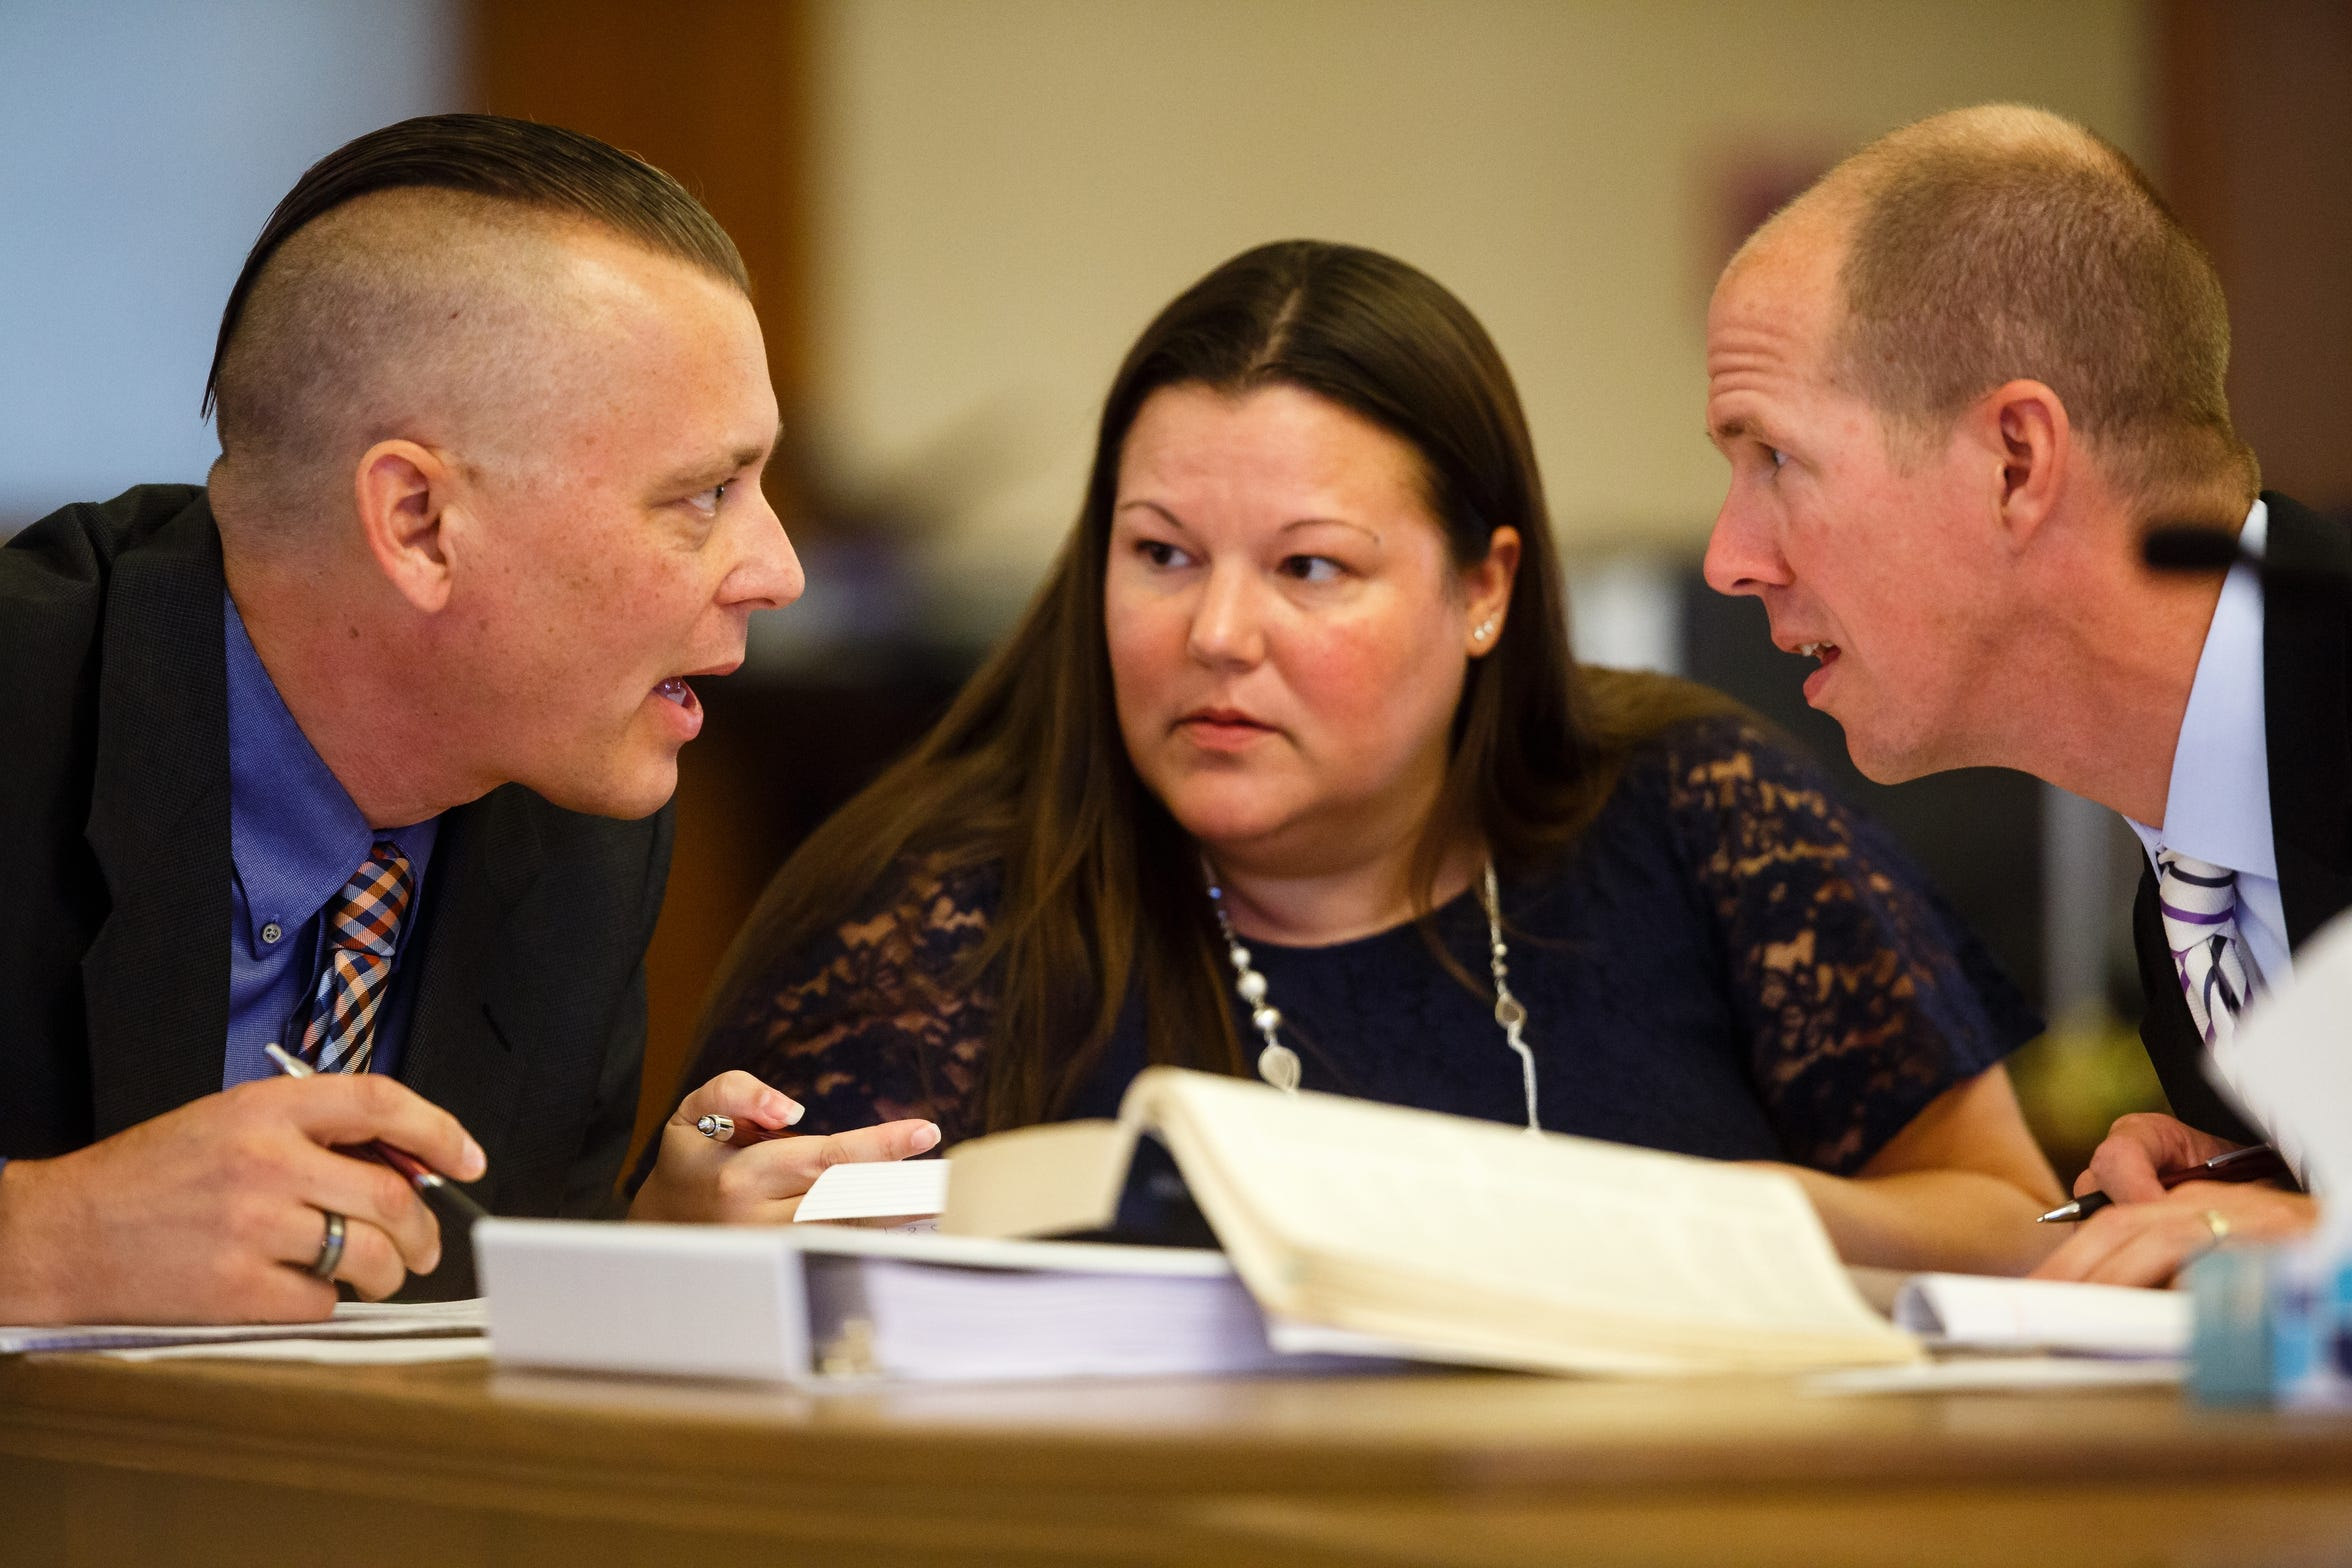 Troy Griffin, left, talks with his defense attorney, Robert Rehkemper, right, during opening statements at the Dallas County Courthouse on Monday, Oct. 22, 2018, in Adel. Griffin's ex-wife Gina Battani accused him of raping her repeatedly while they were married. A jury found him not guilty.